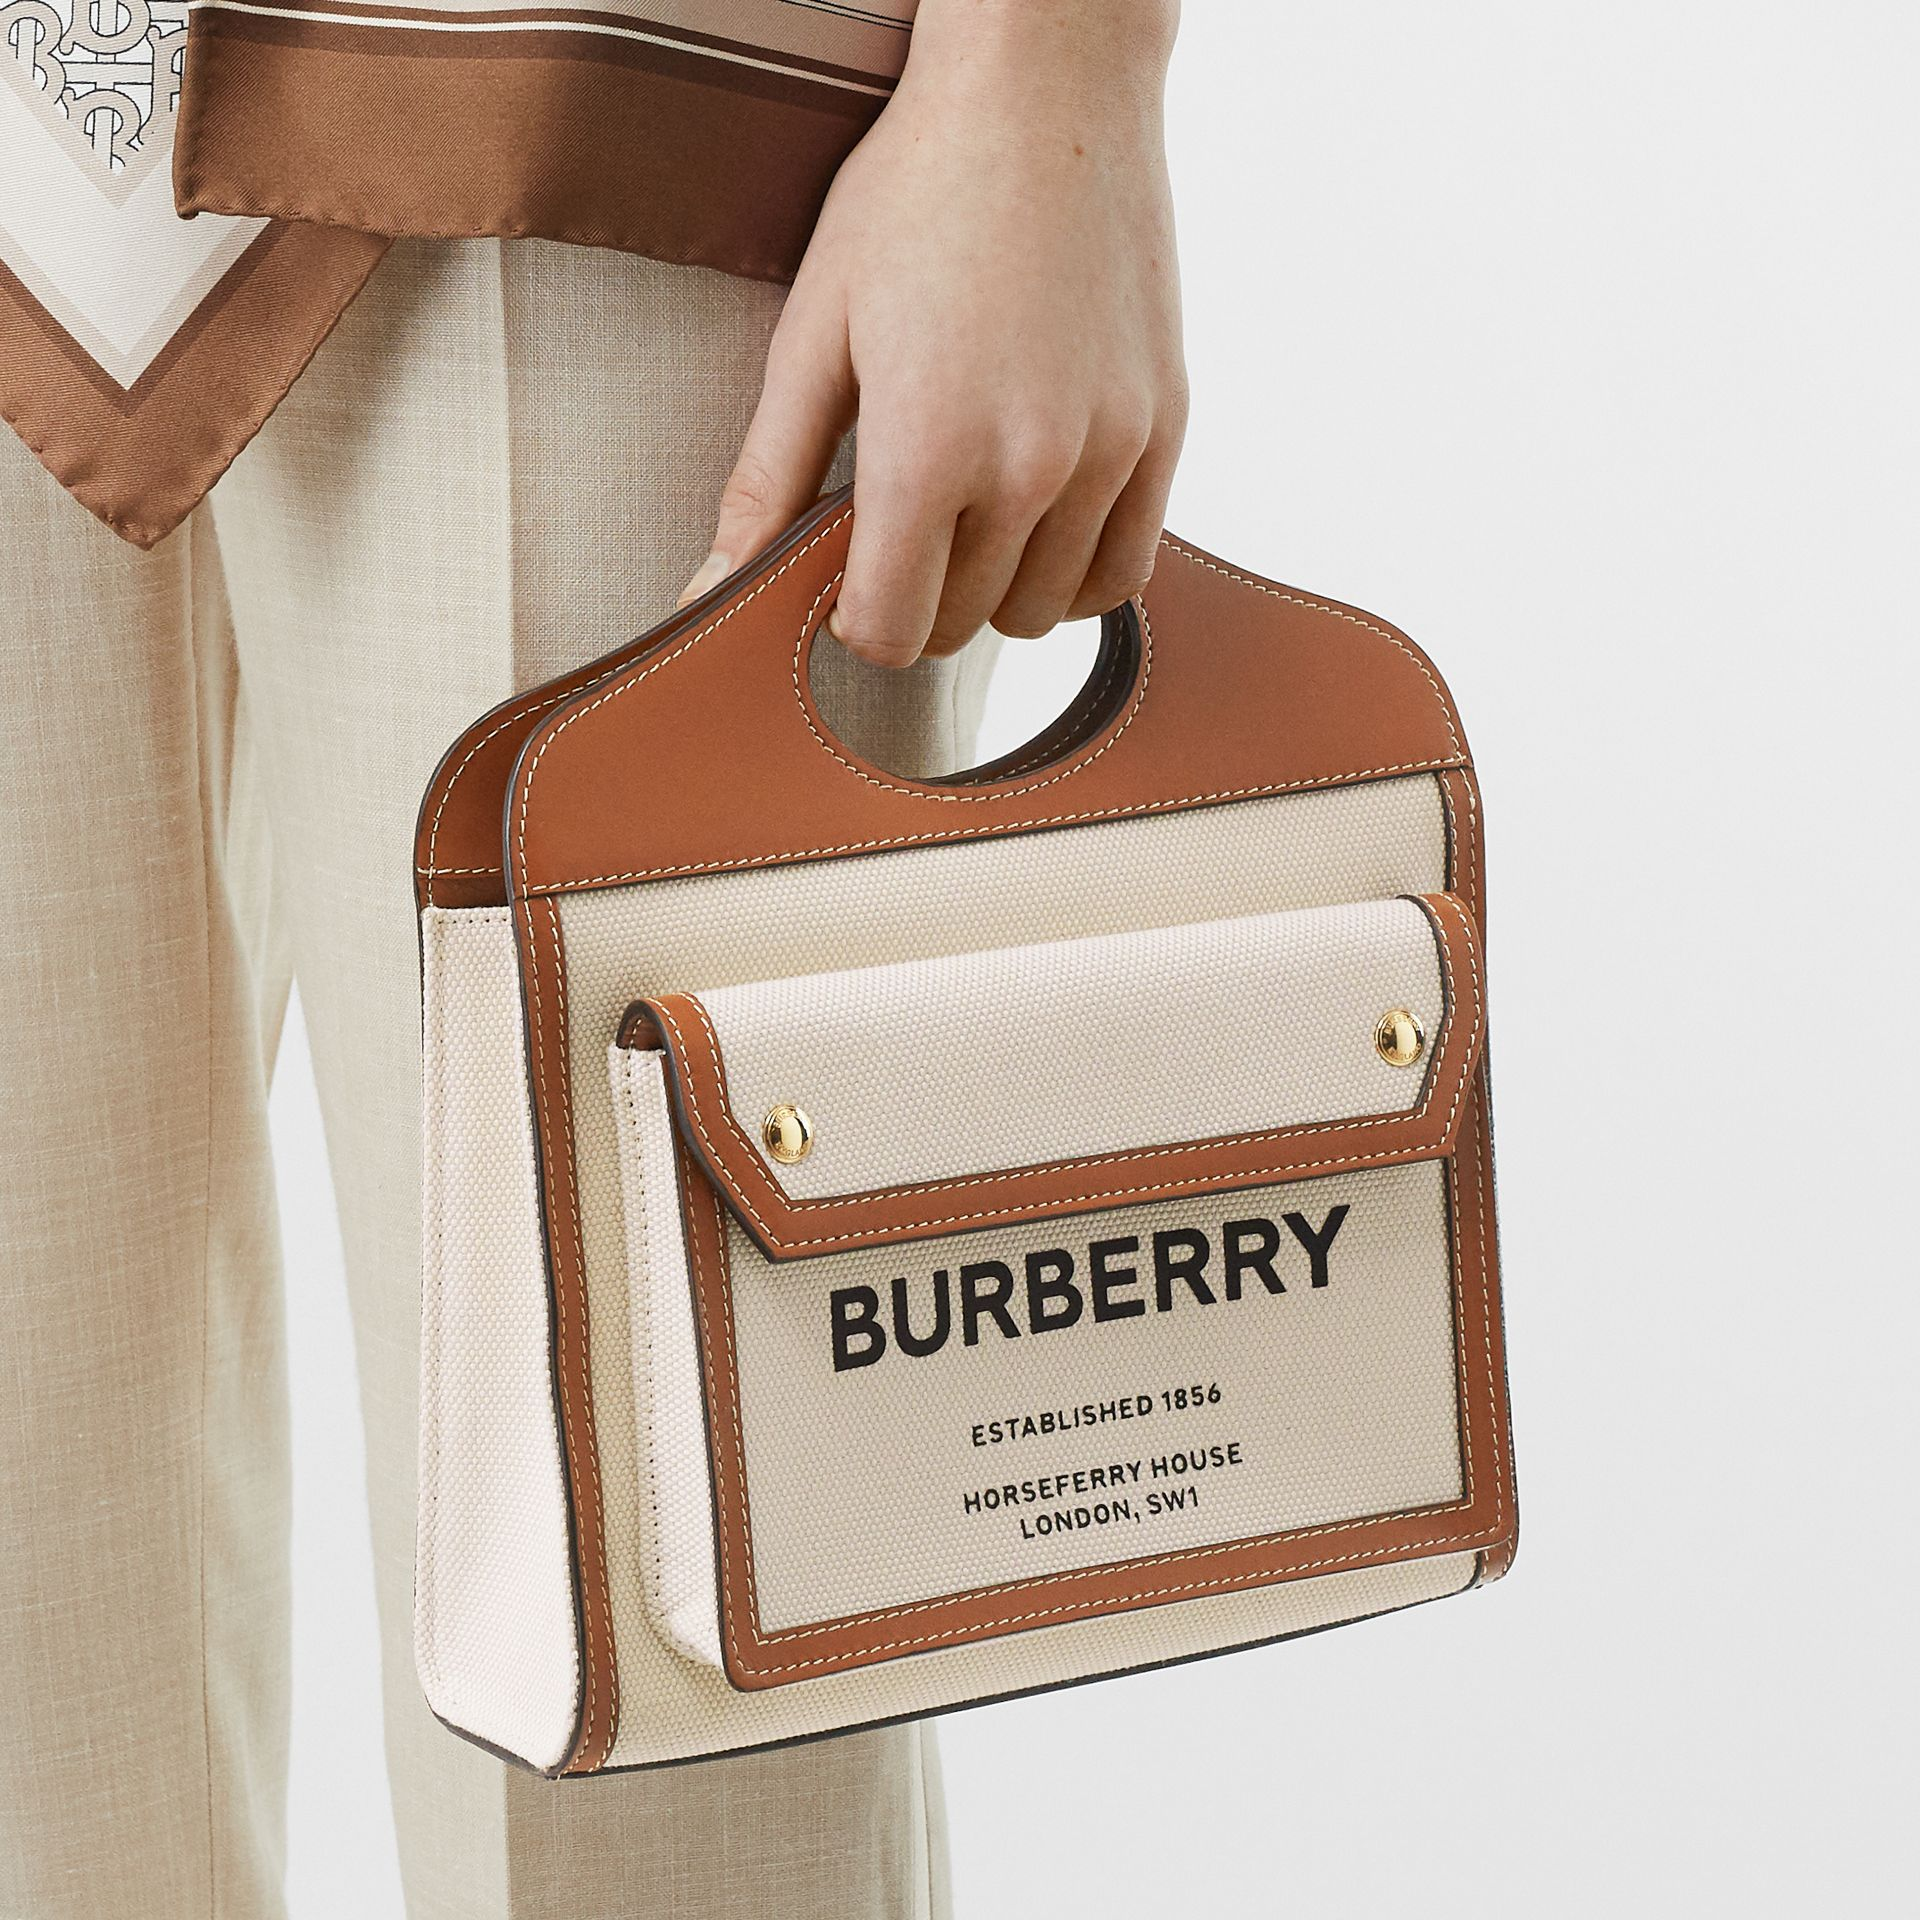 Mini Two-tone Canvas and Leather Pocket Bag in Natural/malt Brown - Women | Burberry - gallery image 2